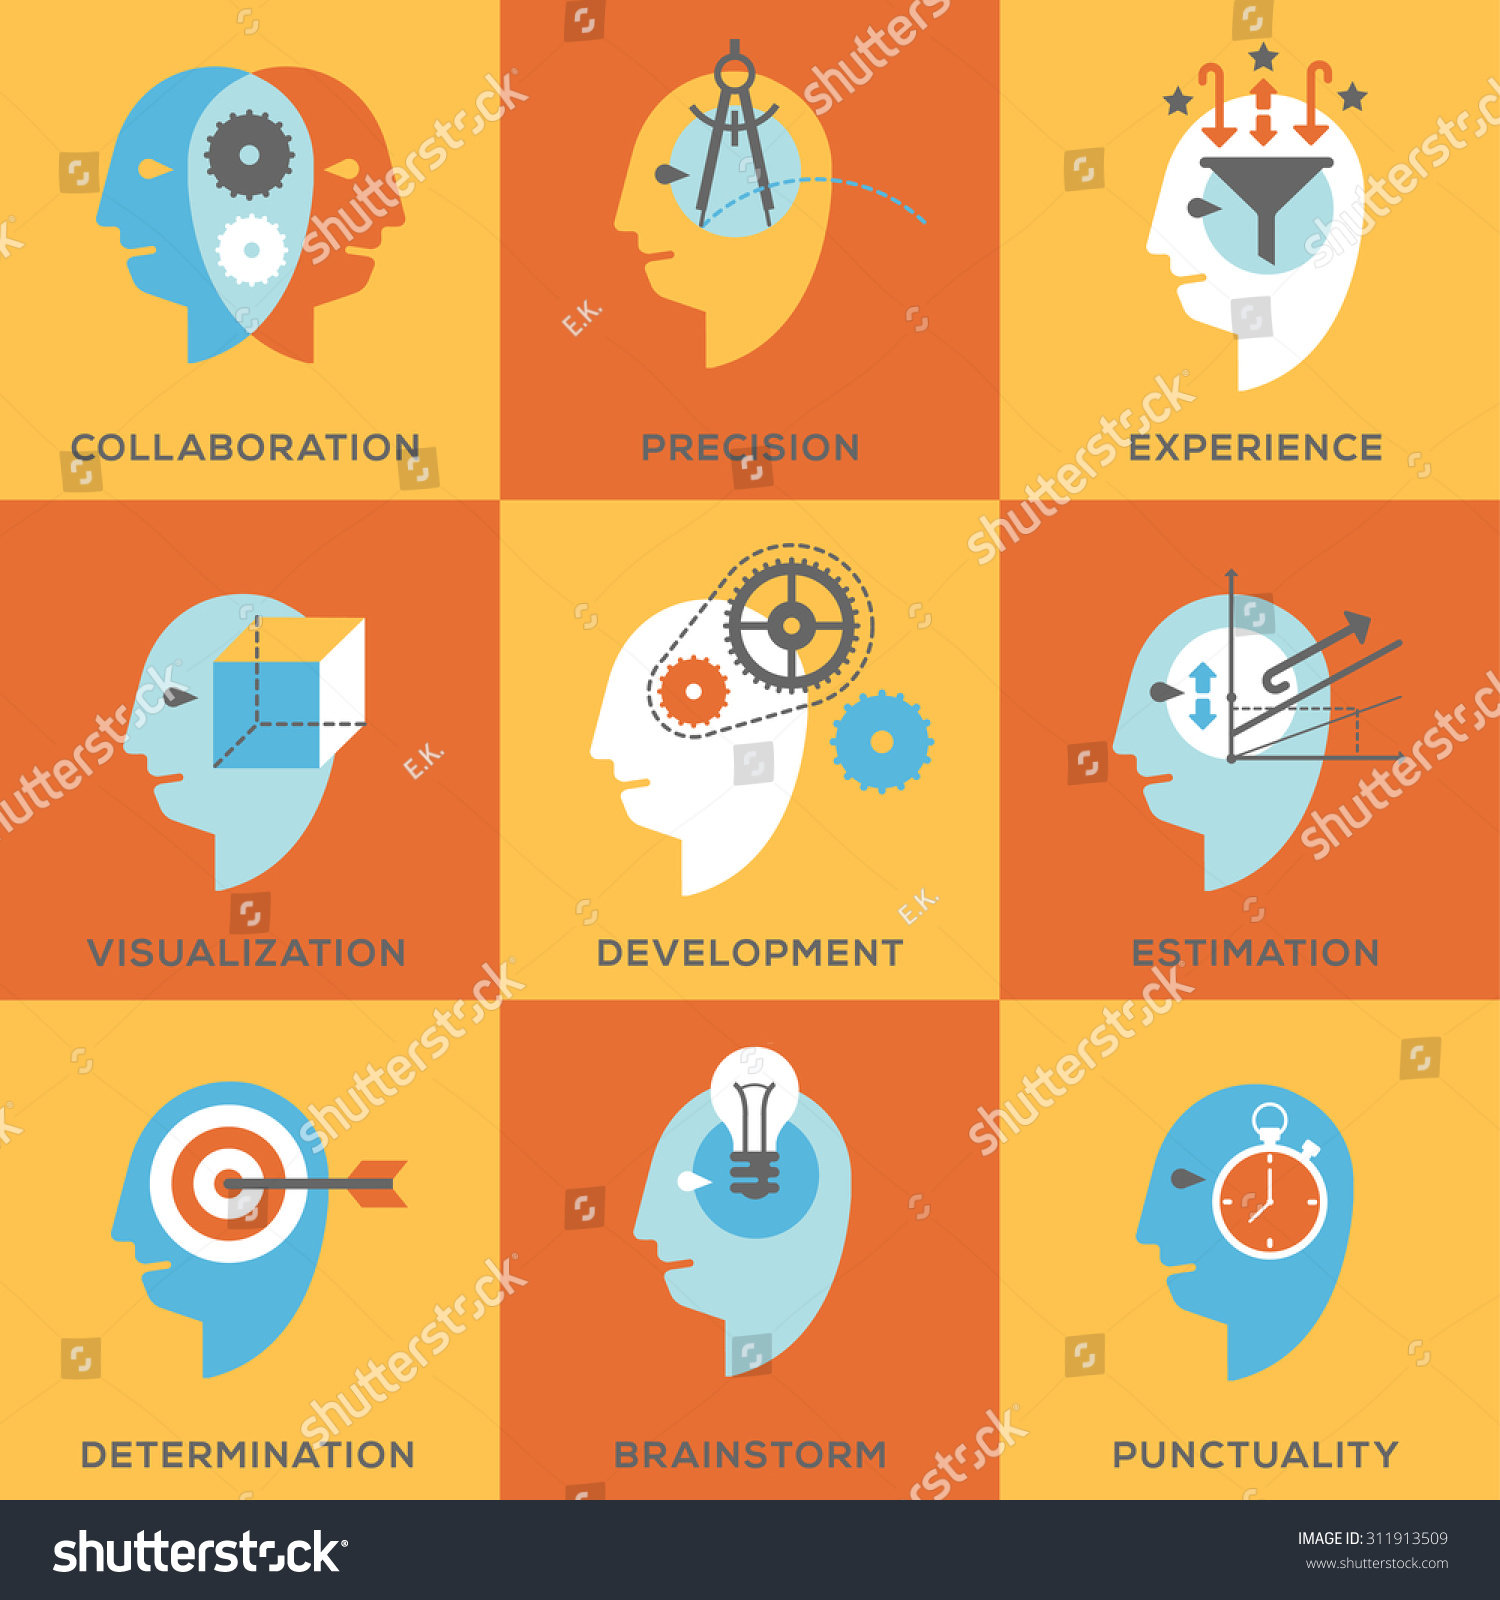 icon set representing symbols personal skills stock vector icon set representing symbols of personal skills essential for successful education and career personal